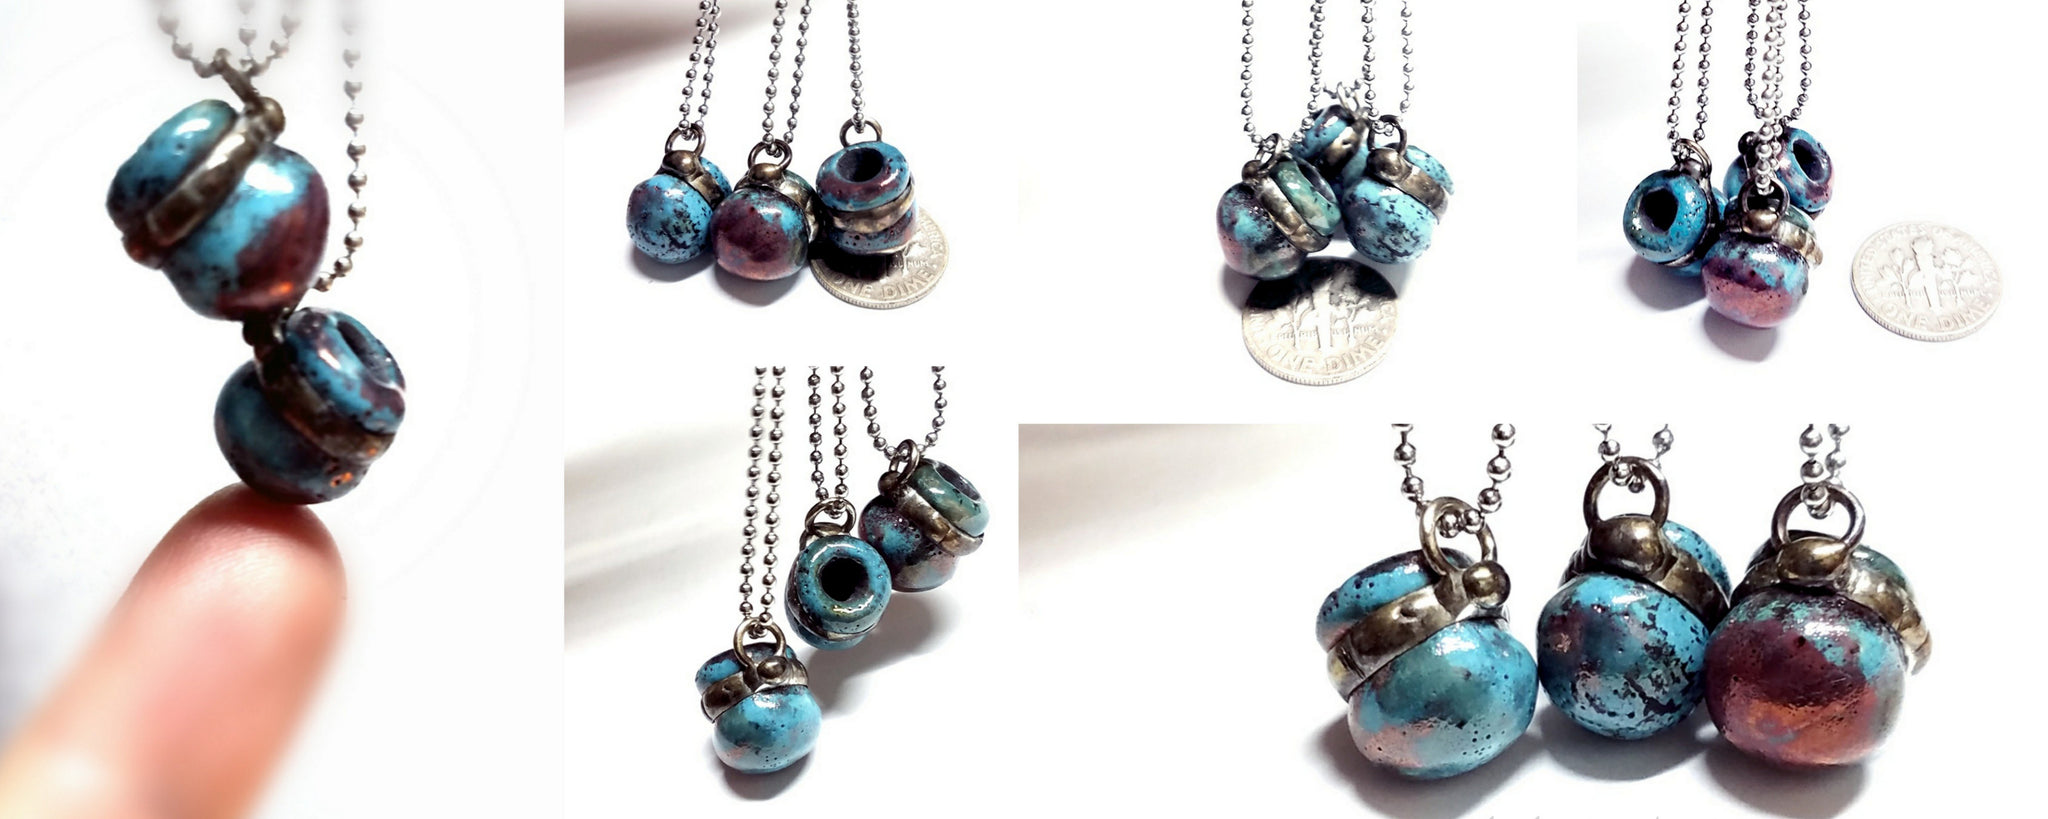 Raku ceramic jewelry and home decor